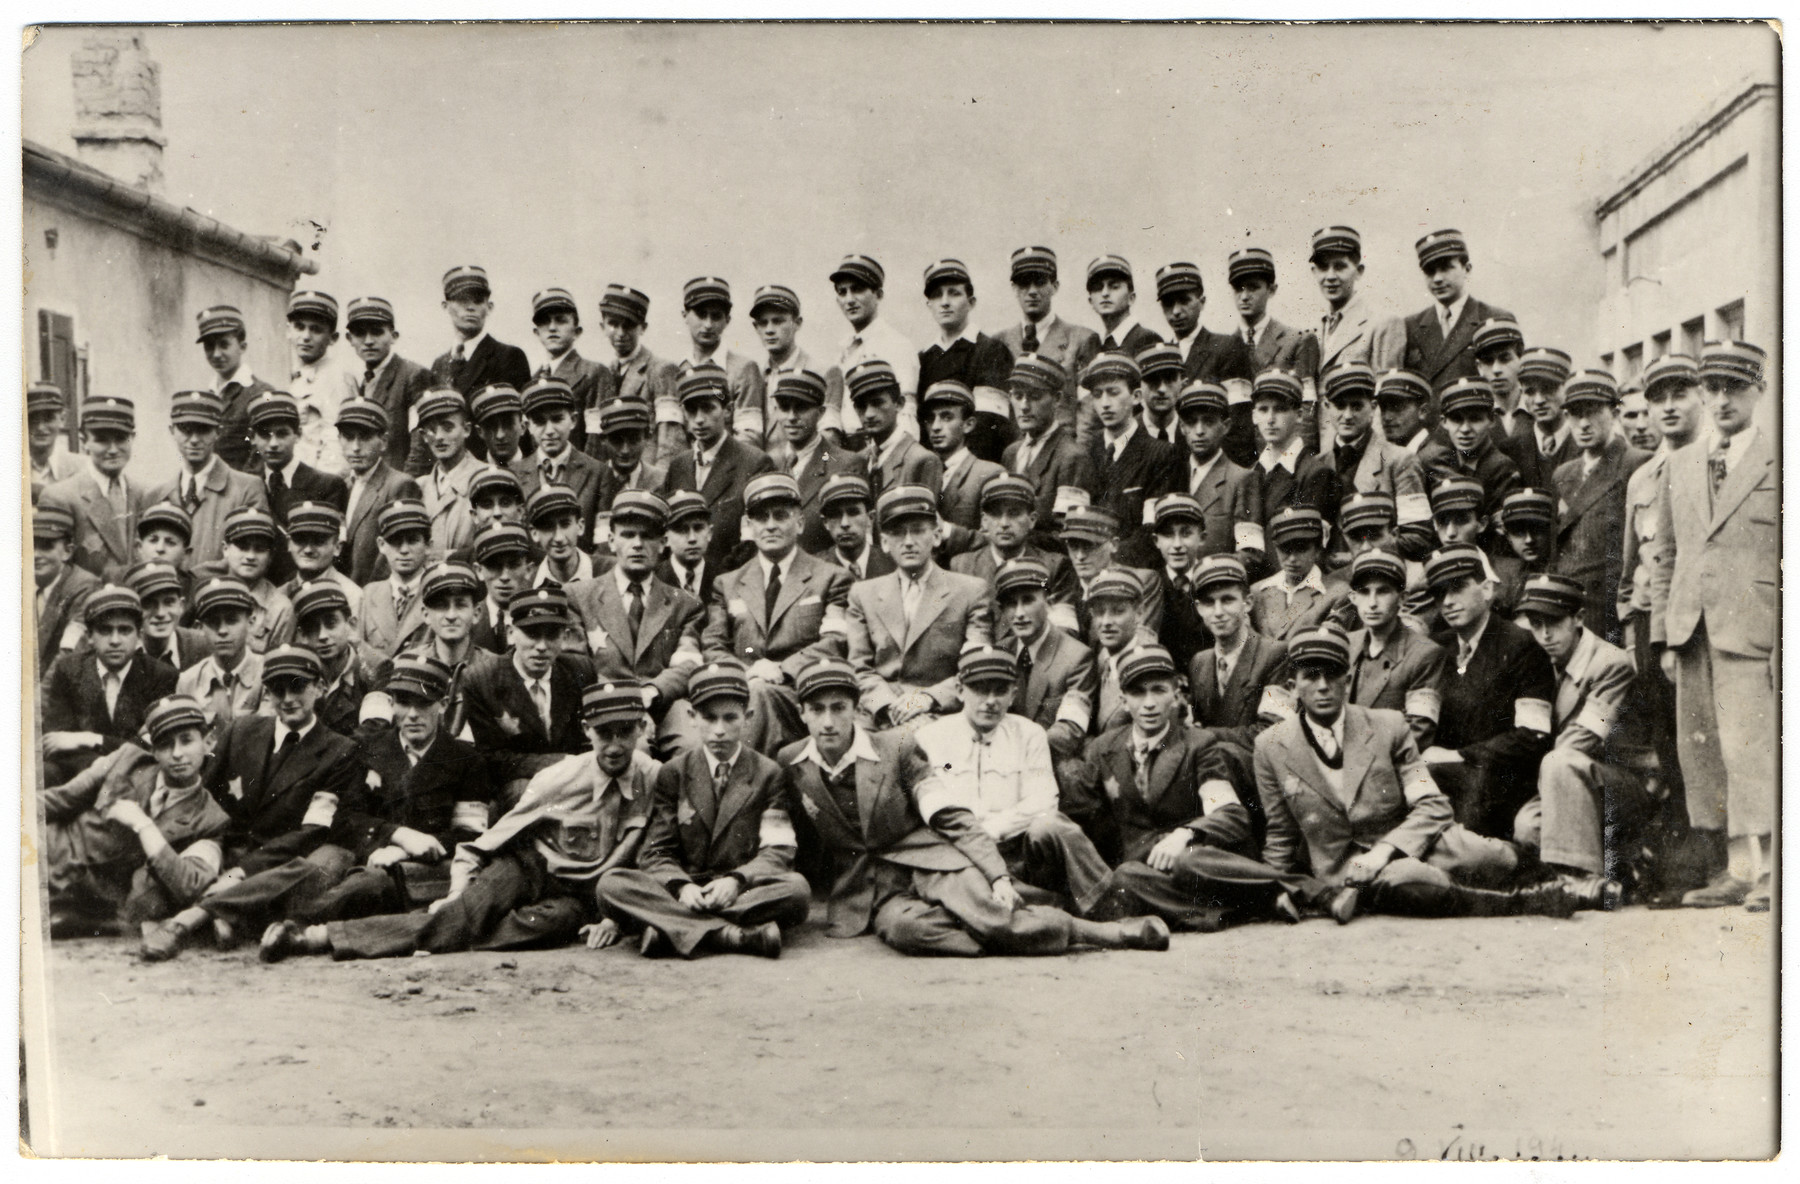 Group portrait of uniformed postal workers in the Lodz ghetto.  [Photo is a dupe of 25199.]